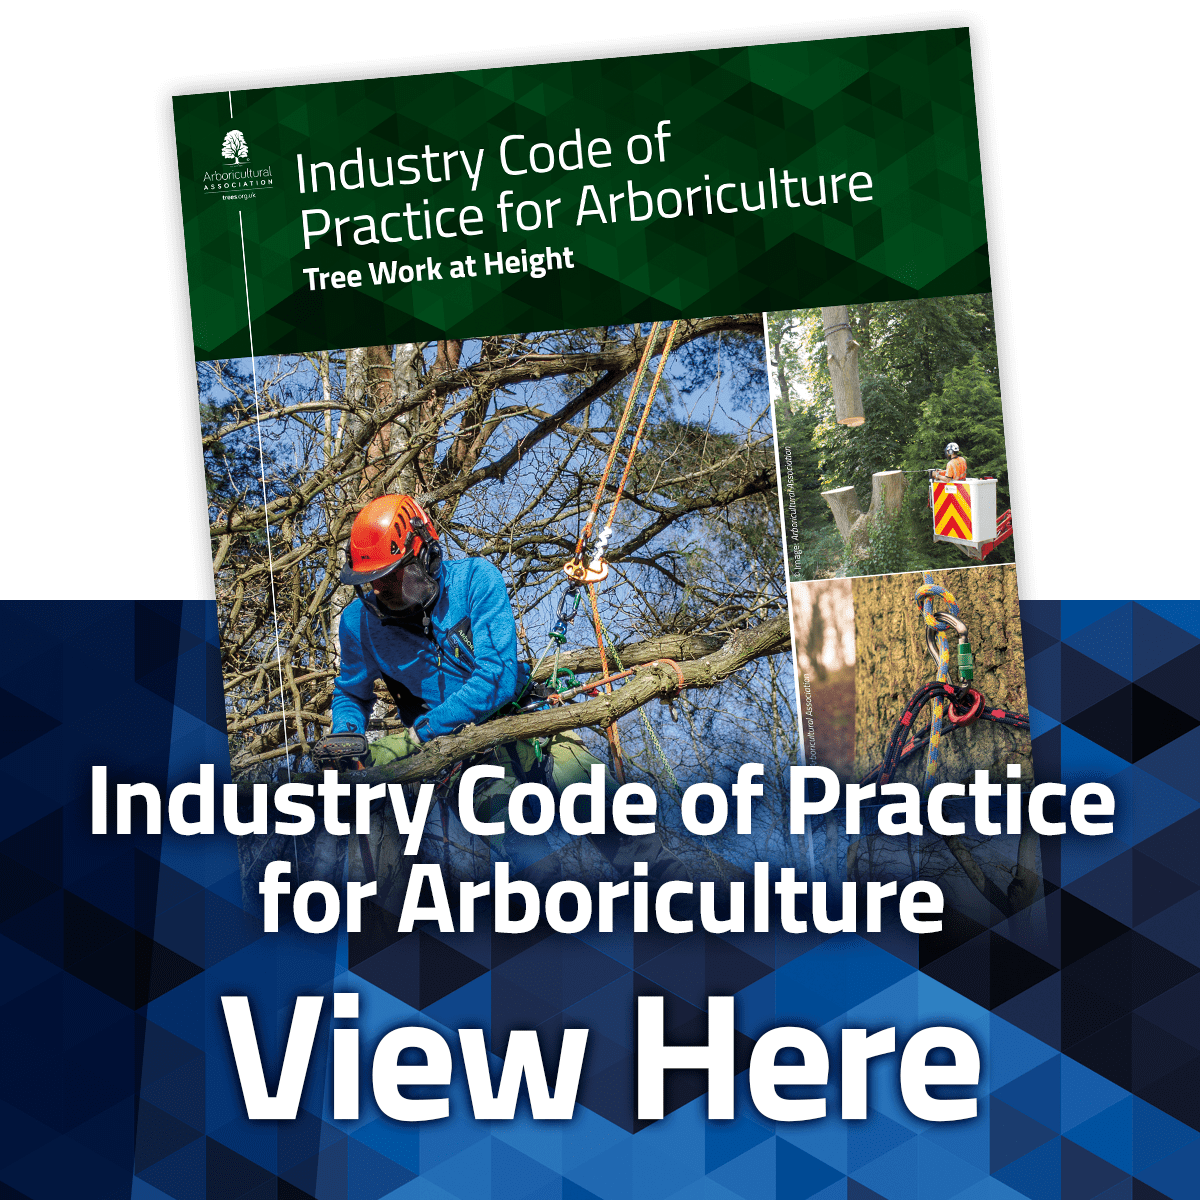 View the Industry Code of Practice: Tree Work at Height